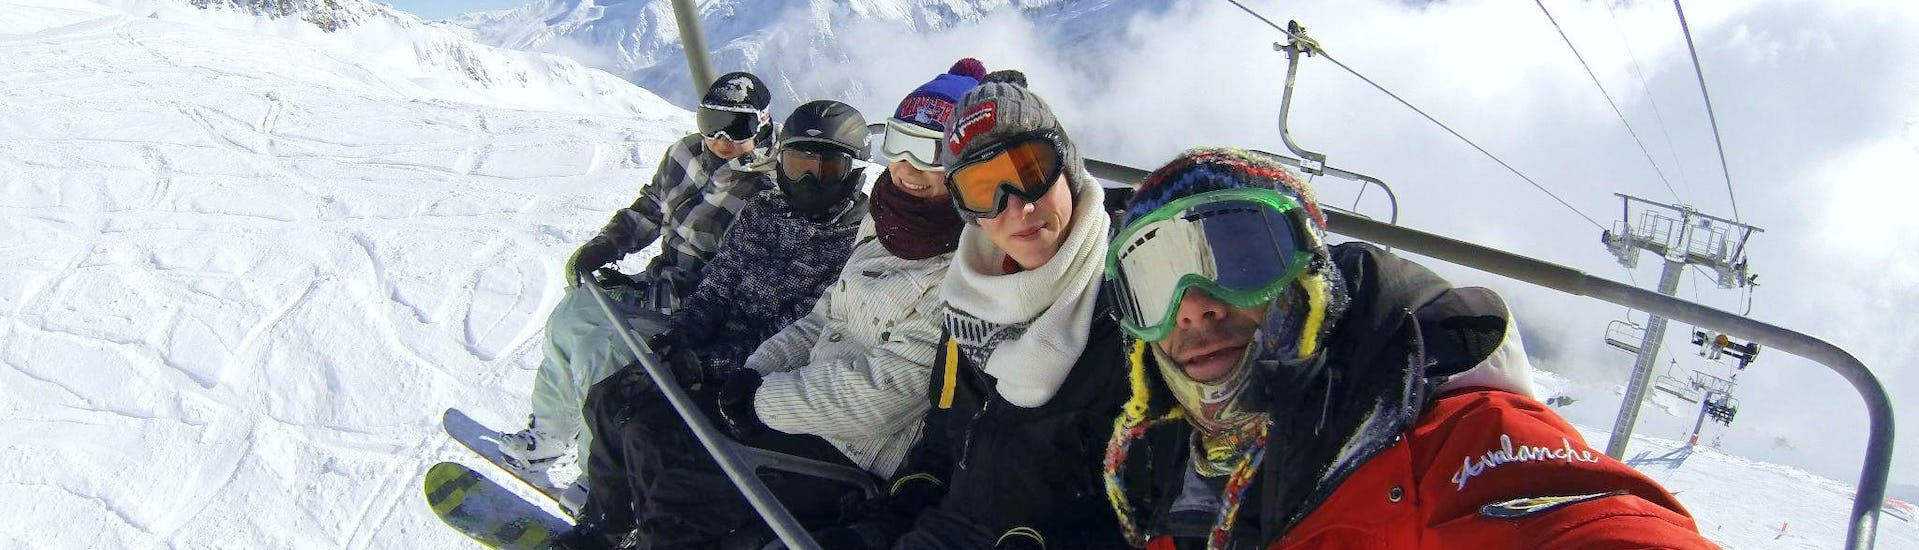 snowboarding-lessons-for-adults-all-levels-esf-chamonix-hero